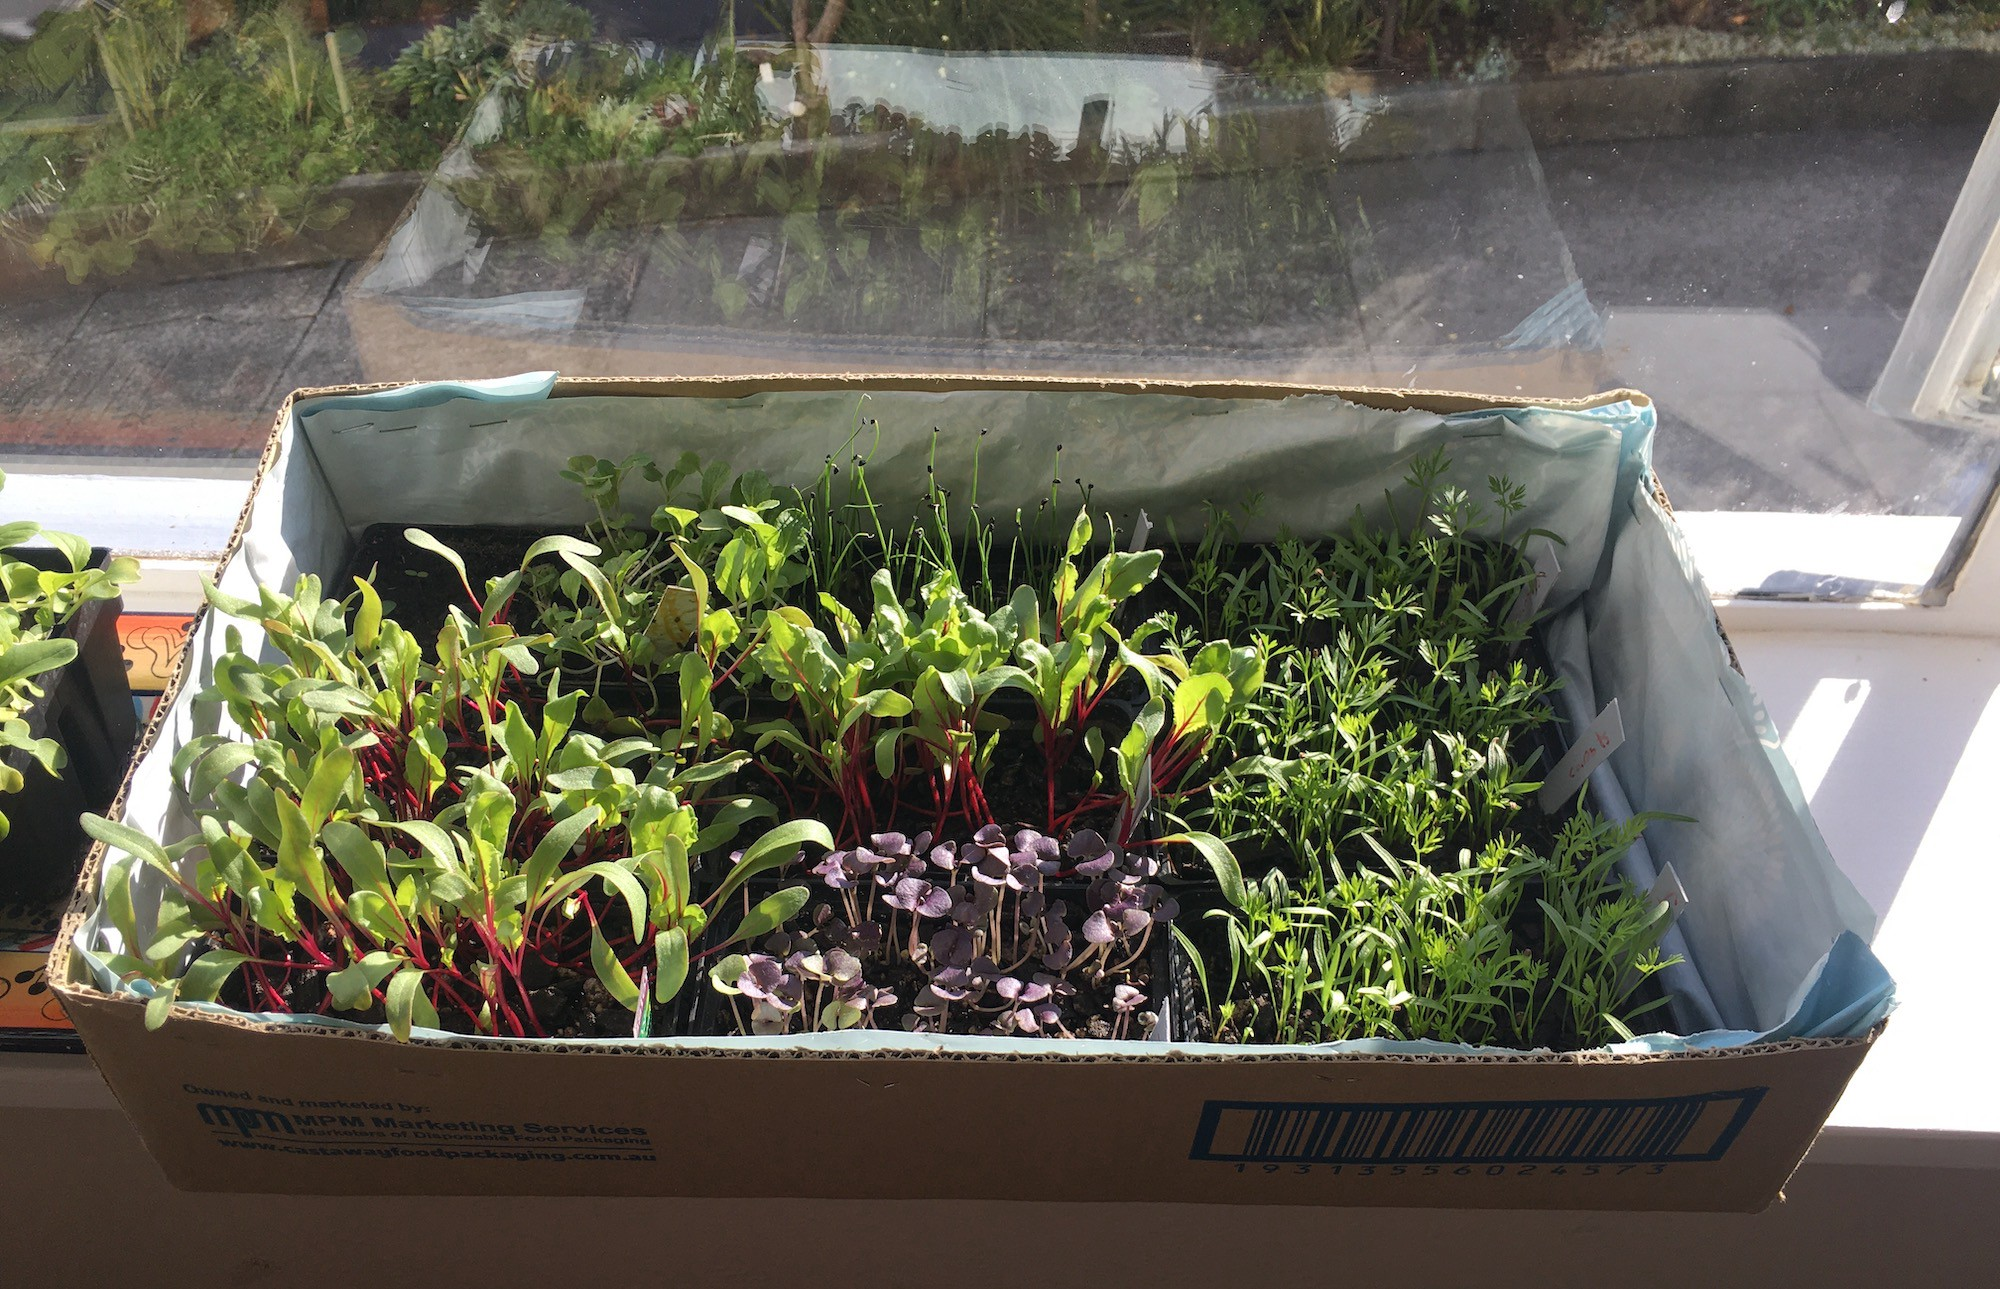 A box of seedlings sitting on a sunny windowsill. The seedlings include carrots, beets, basil, leeks, and pak choi.